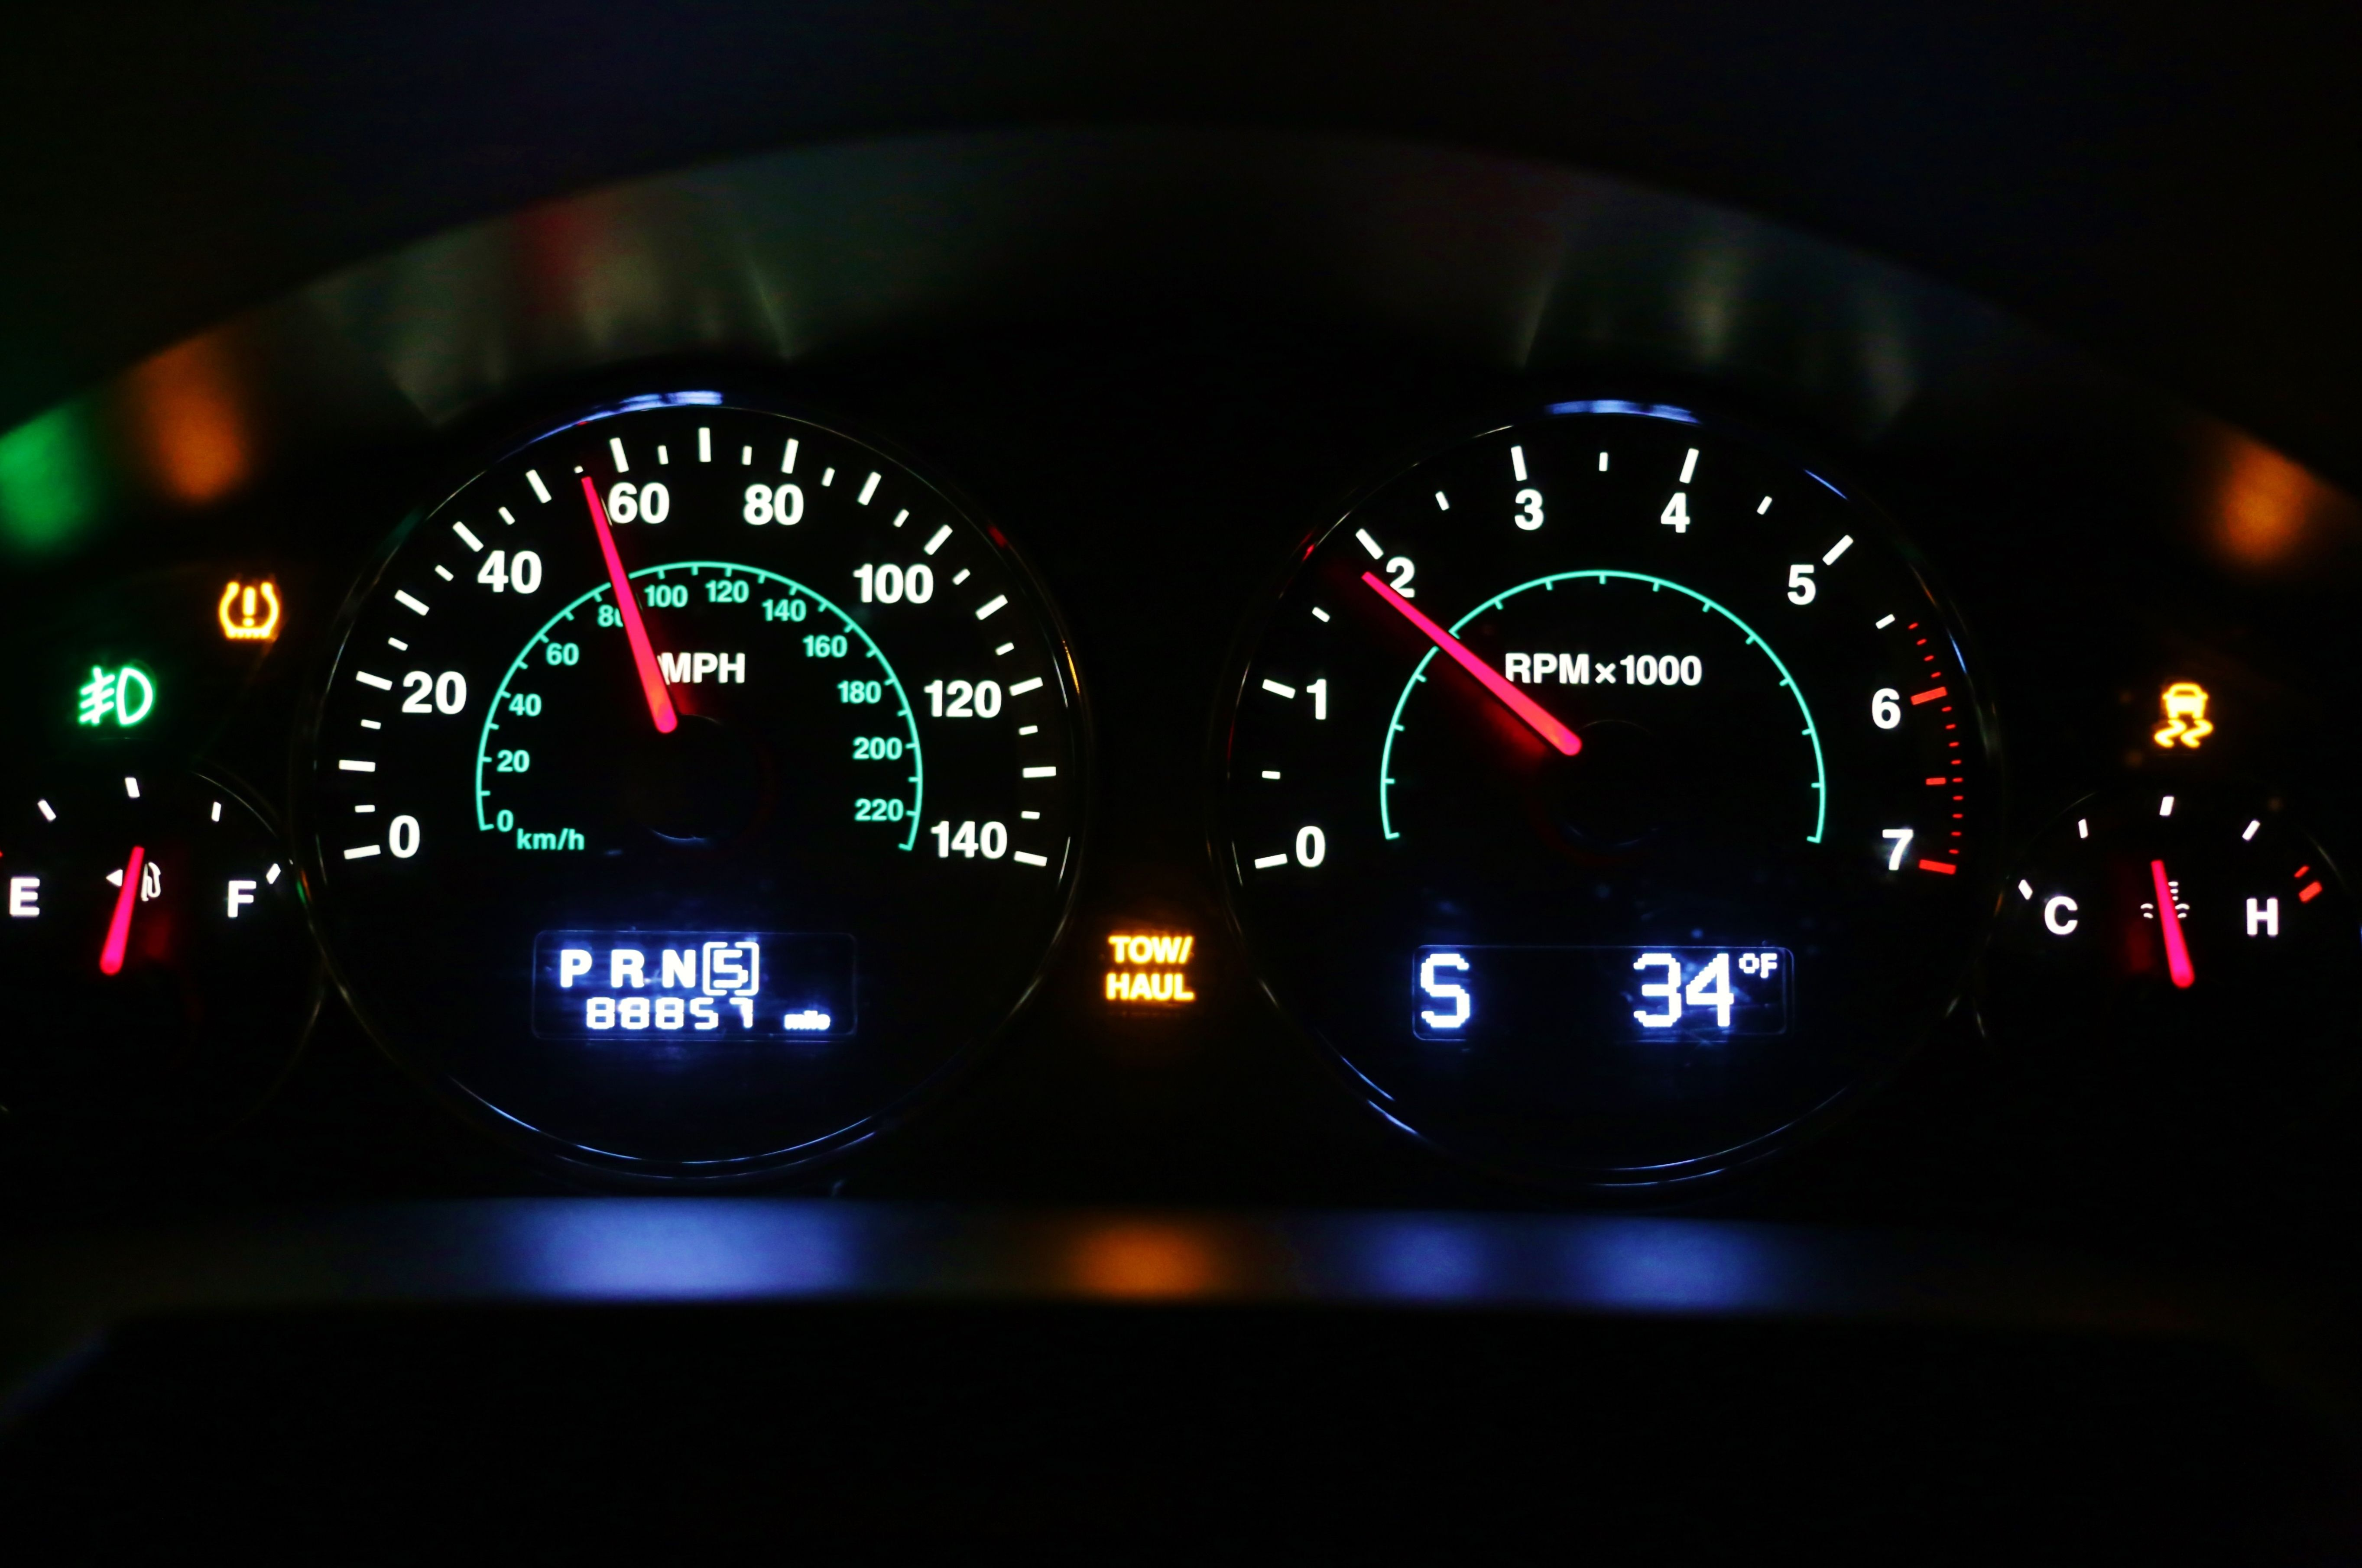 Tire-Pressure Warning – What to Do If the TPMS Light Comes On